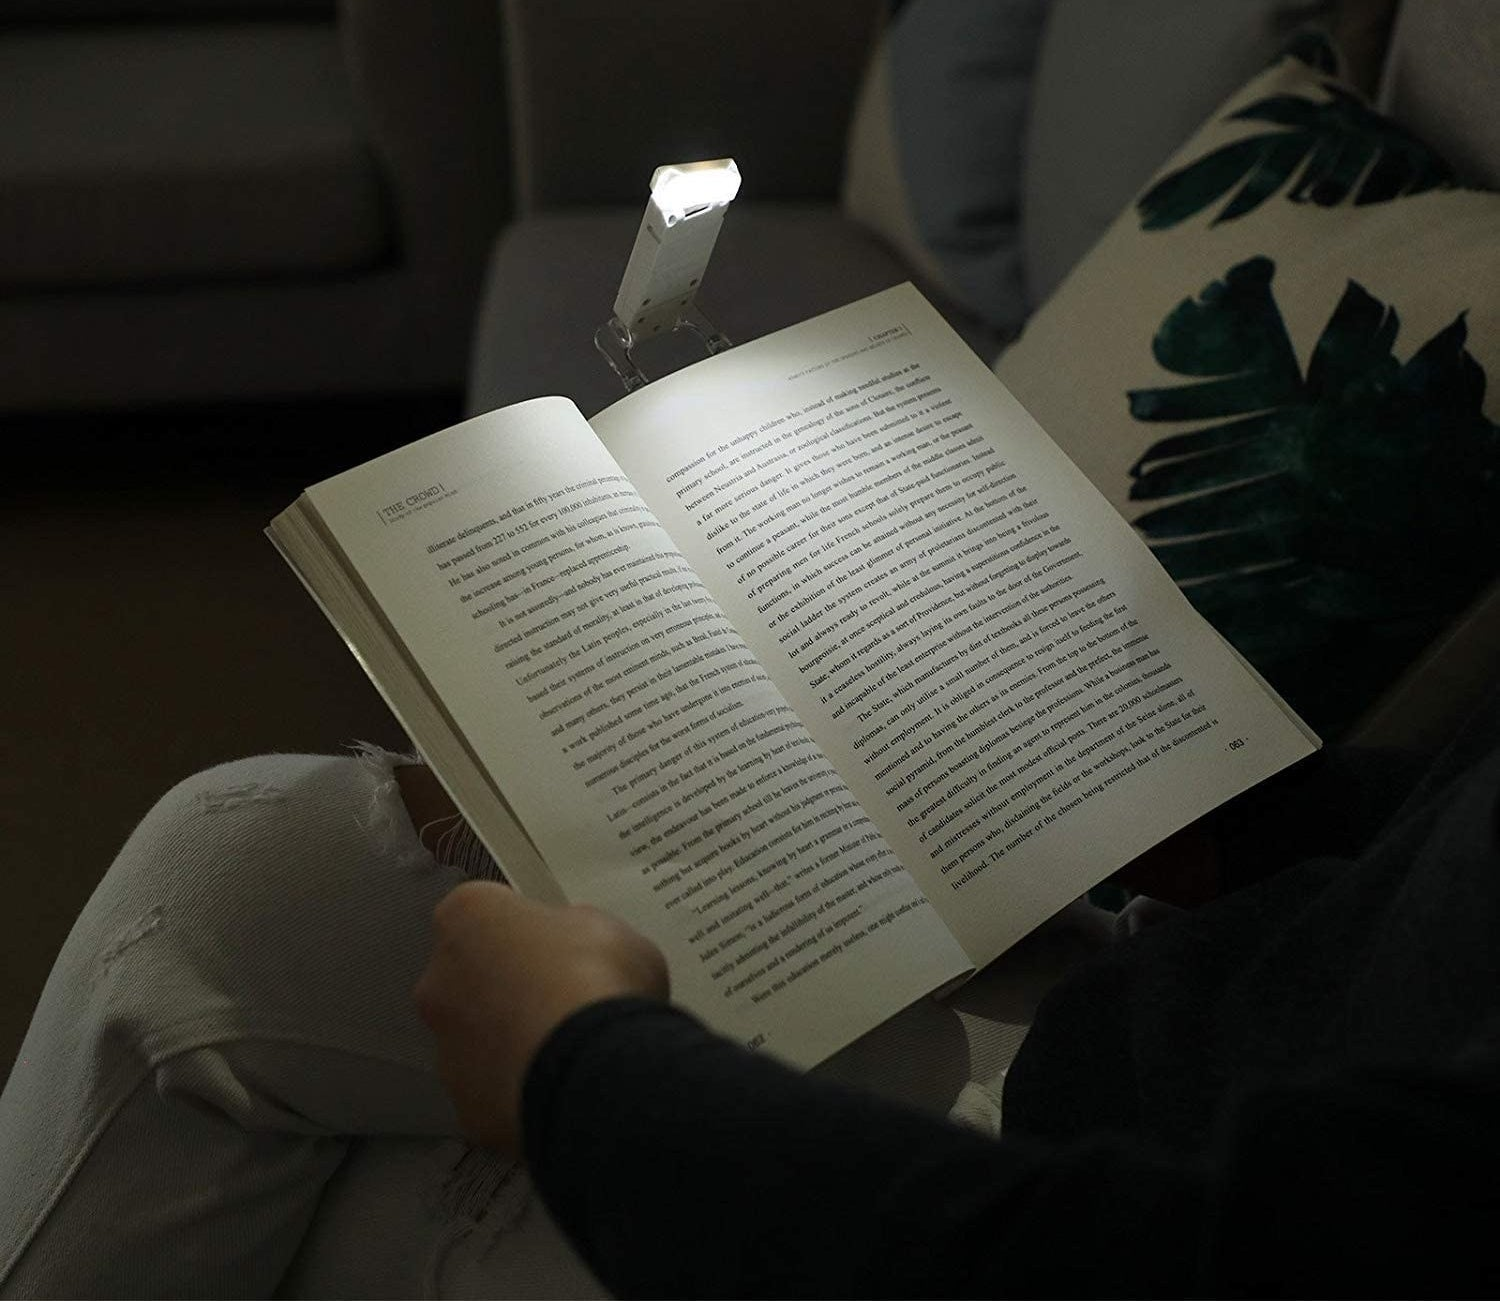 A person reading a large book in the dark There is a small book light attached to the top of the book